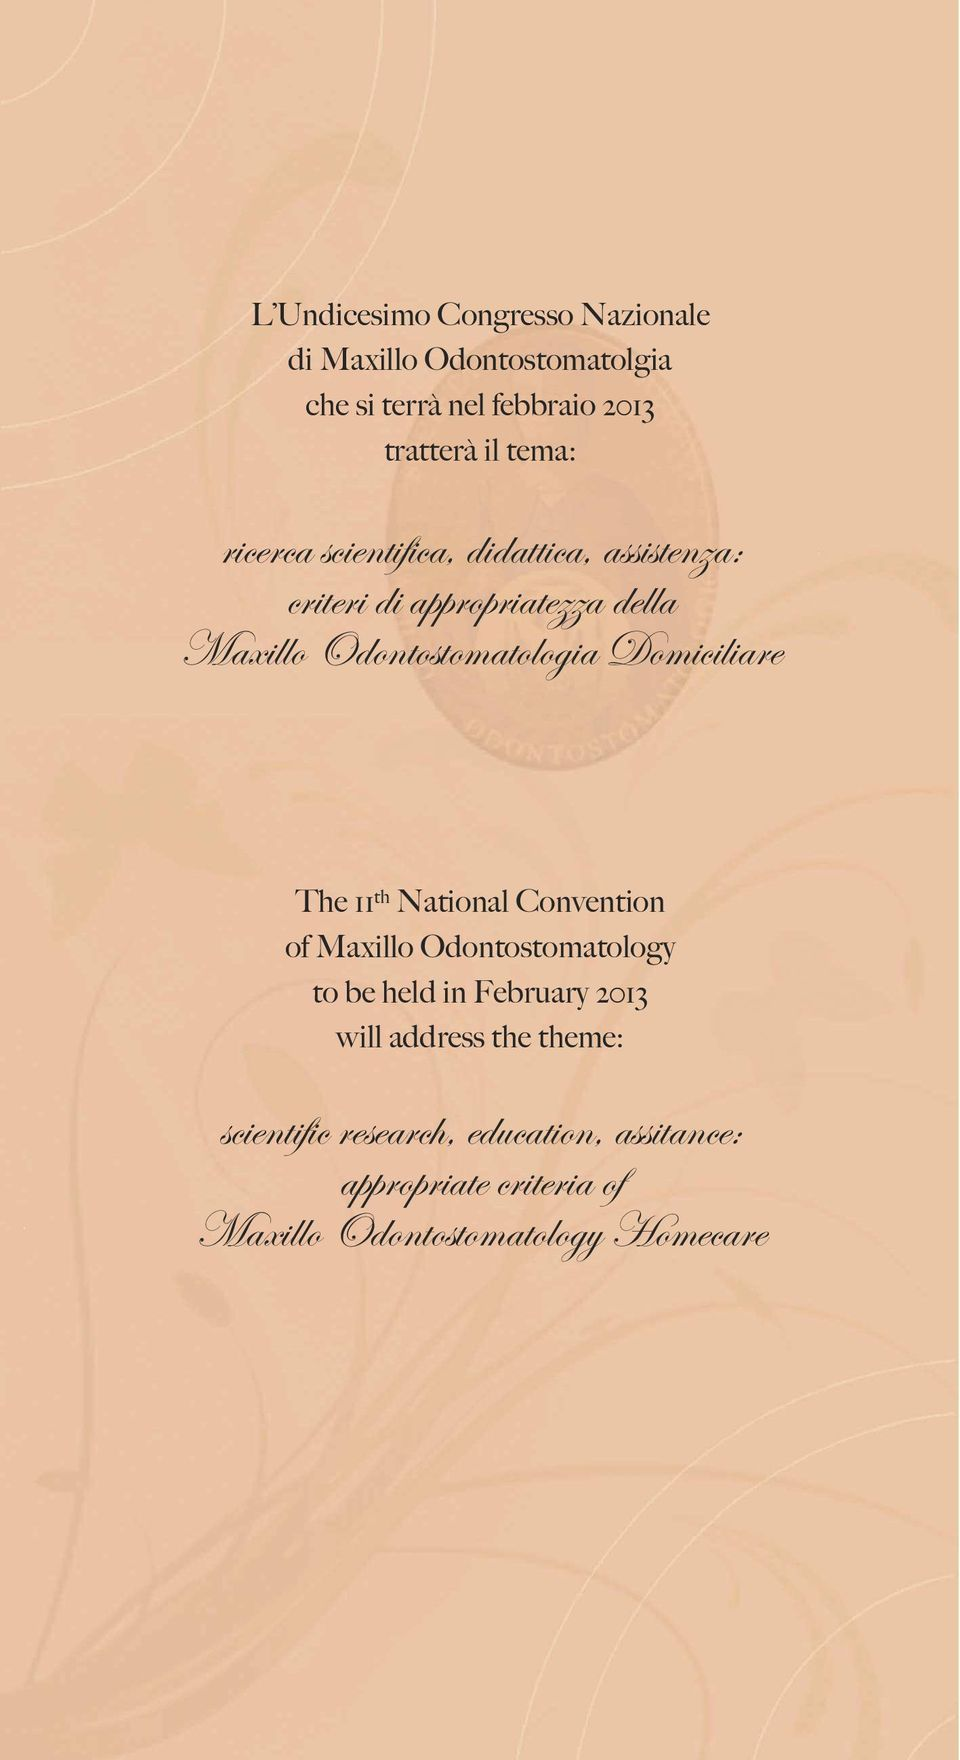 Domiciliare The 11 th National Convention of Maxillo Odontostomatology to be held in February 2013 will